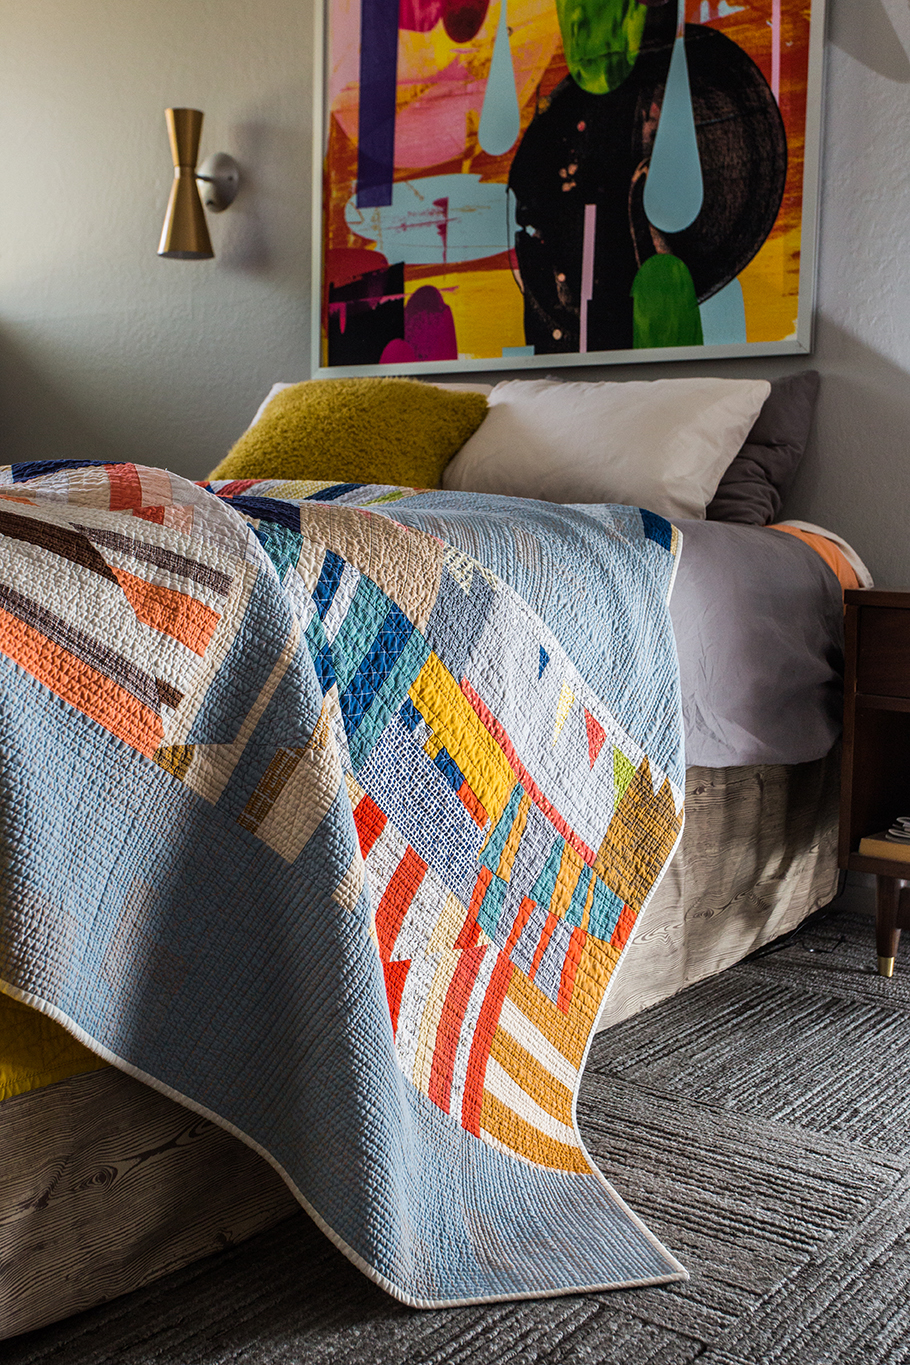 Quilt Top Pieced by Janice Zeller Ryan, Blocks made by members of the LAMQG, Quilted by Melissa Richie